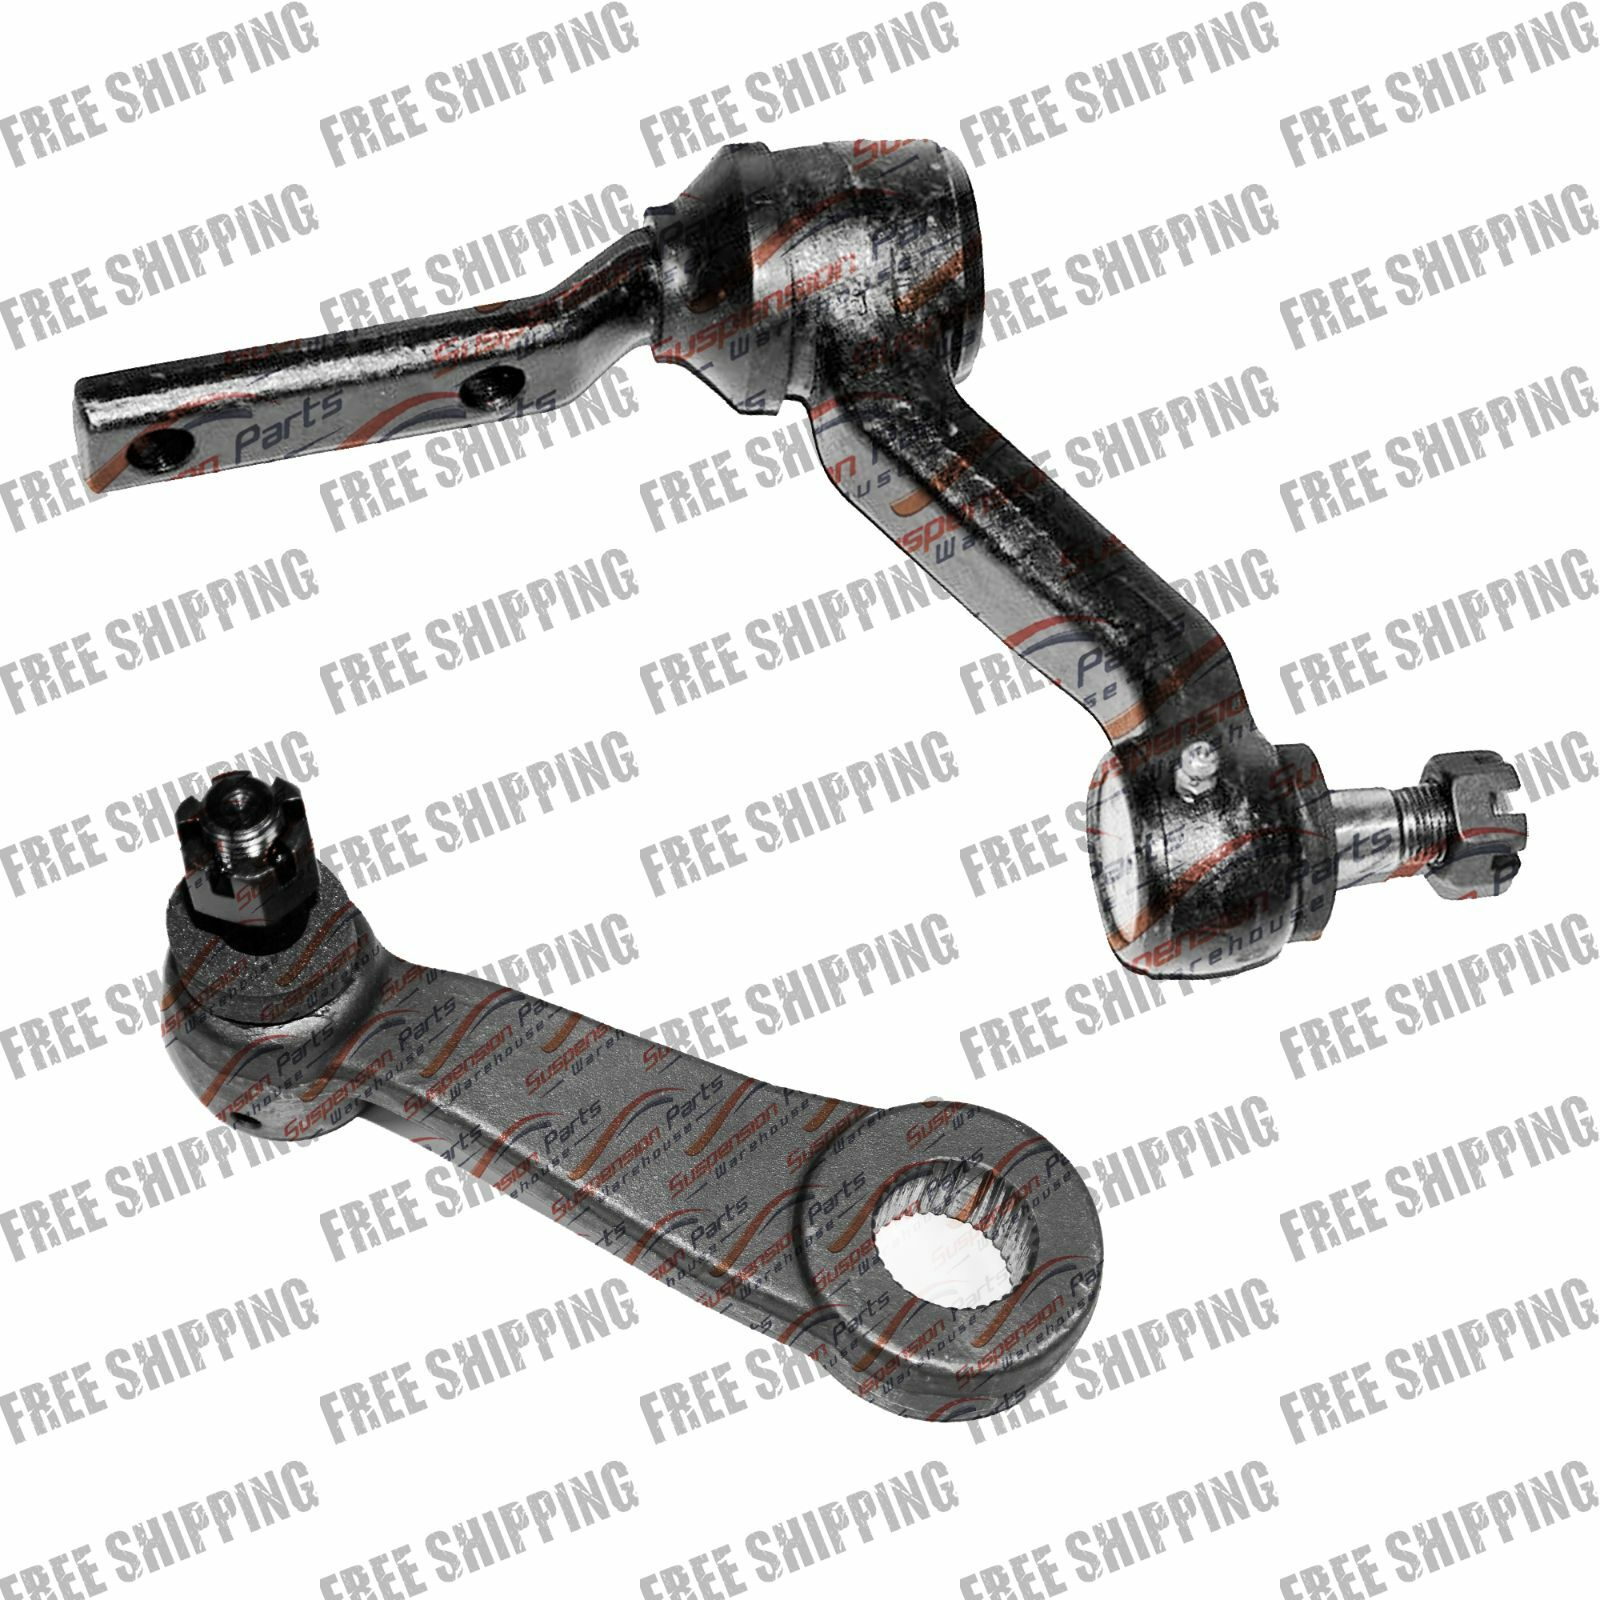 4wd Steering Pitman Idler Arm For Chevrolet S10 Blazer Gmc Sonoma Olds Bravada